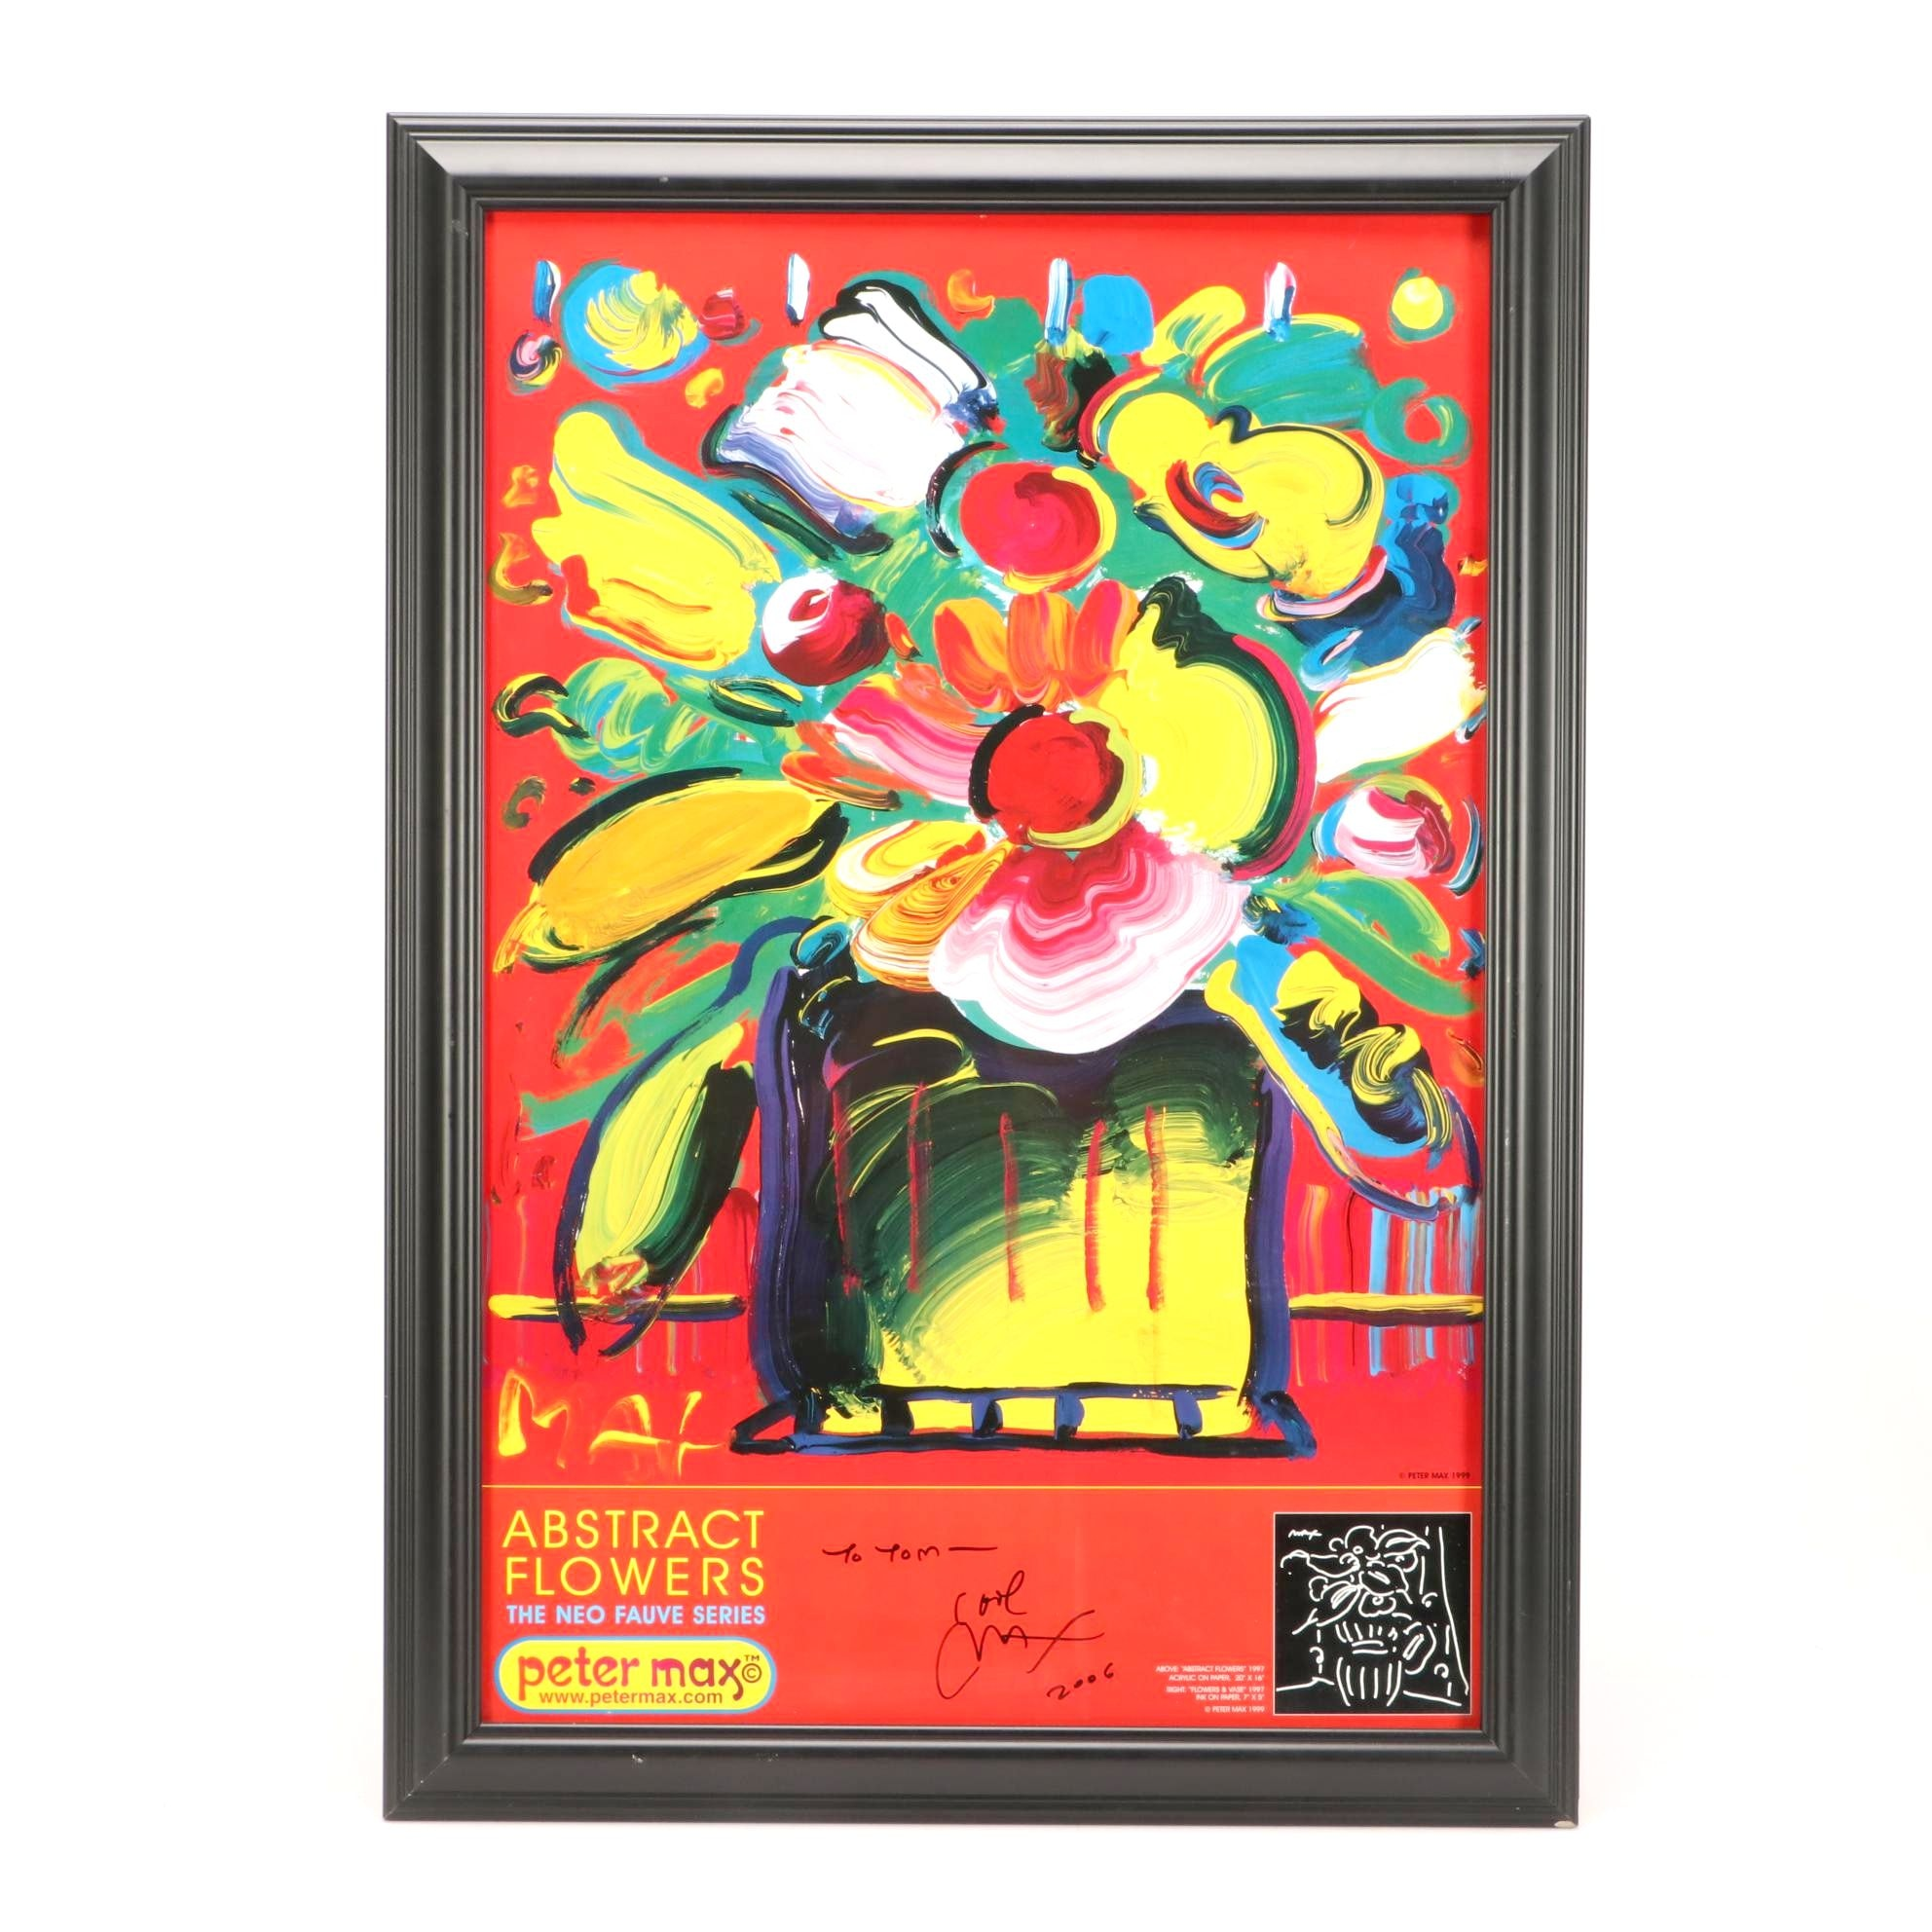 "Autographed Peter Max Poster ""Abstract Flowers: The Neo Fauve Series"""